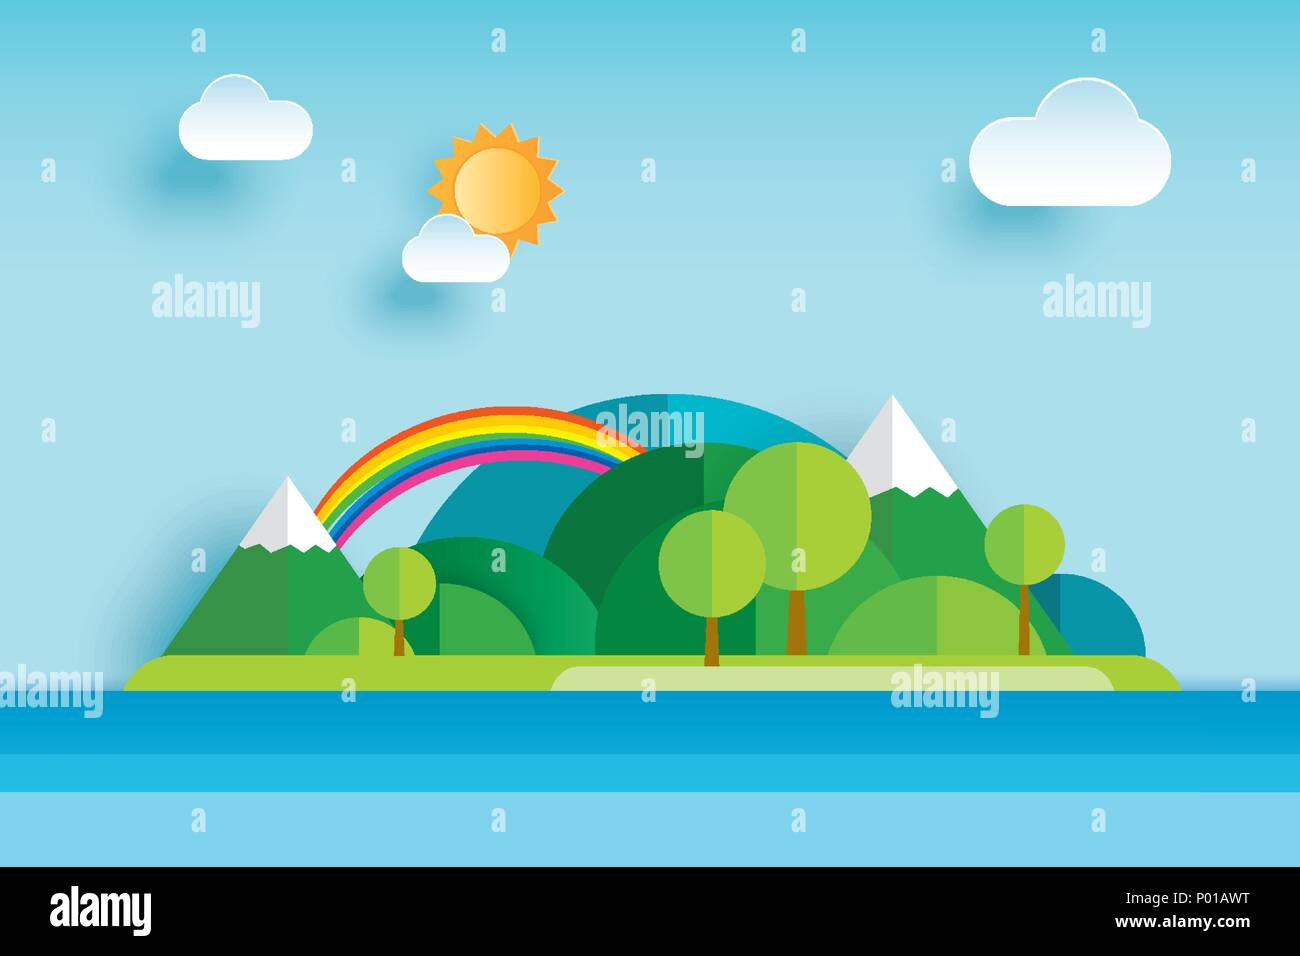 Island and sea in summer origami paper art background. Seascape with mountain and sky. - Stock Image